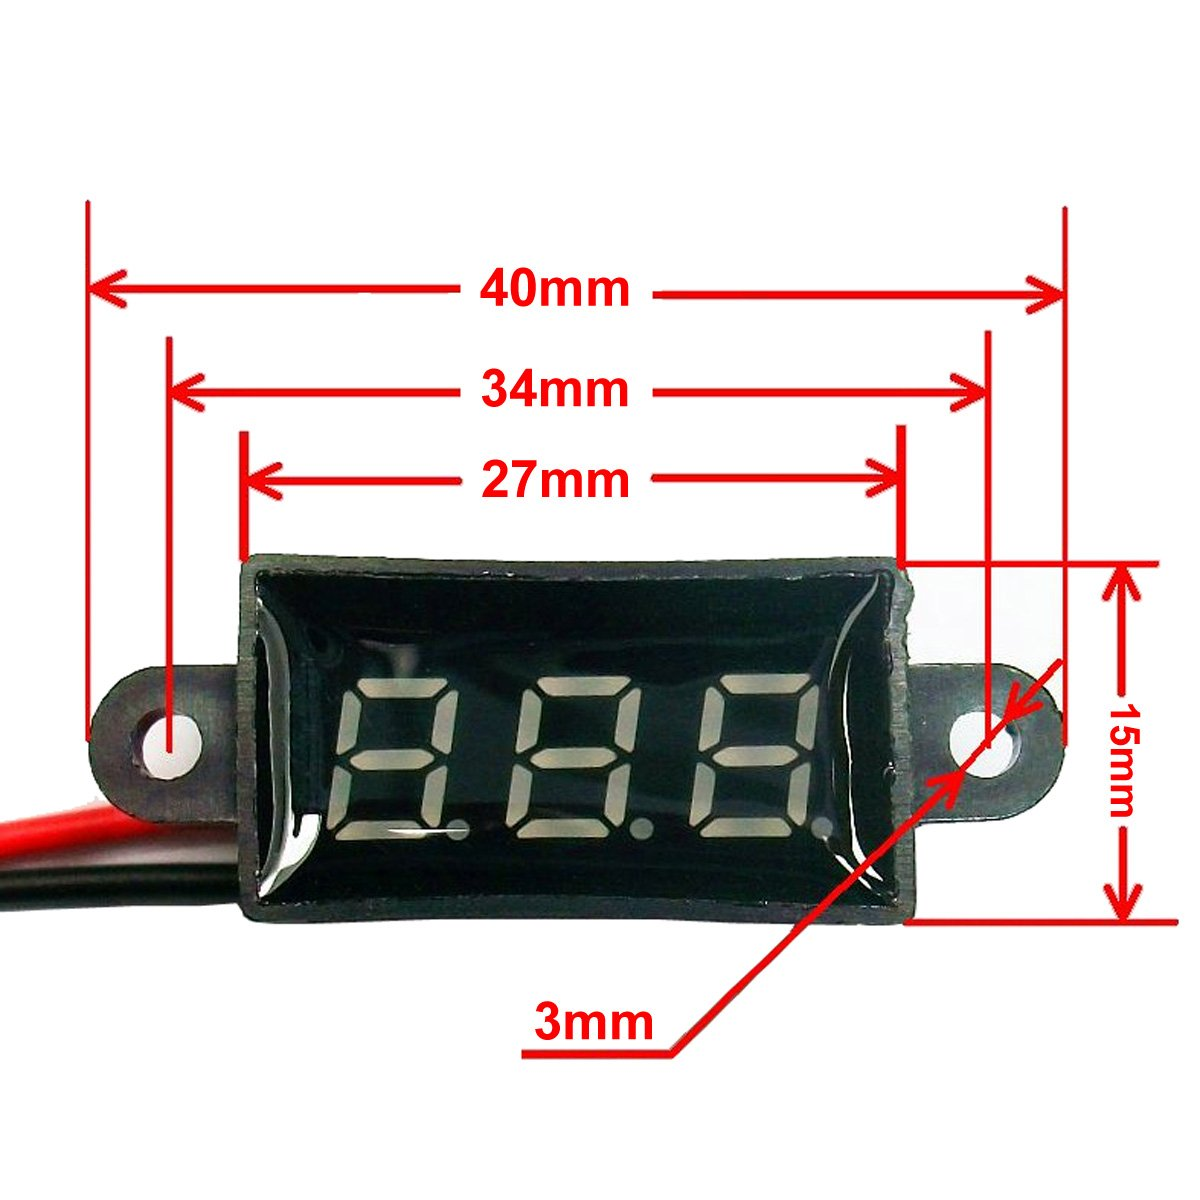 DROK Micro Voltmeter 3.50-30.0V Digital Voltage Panel Meter DC 12V 0.28 2-Wires Volt Monitor Waterproof Battery Power Tester for Car Motorcycle Vehicle Automotive